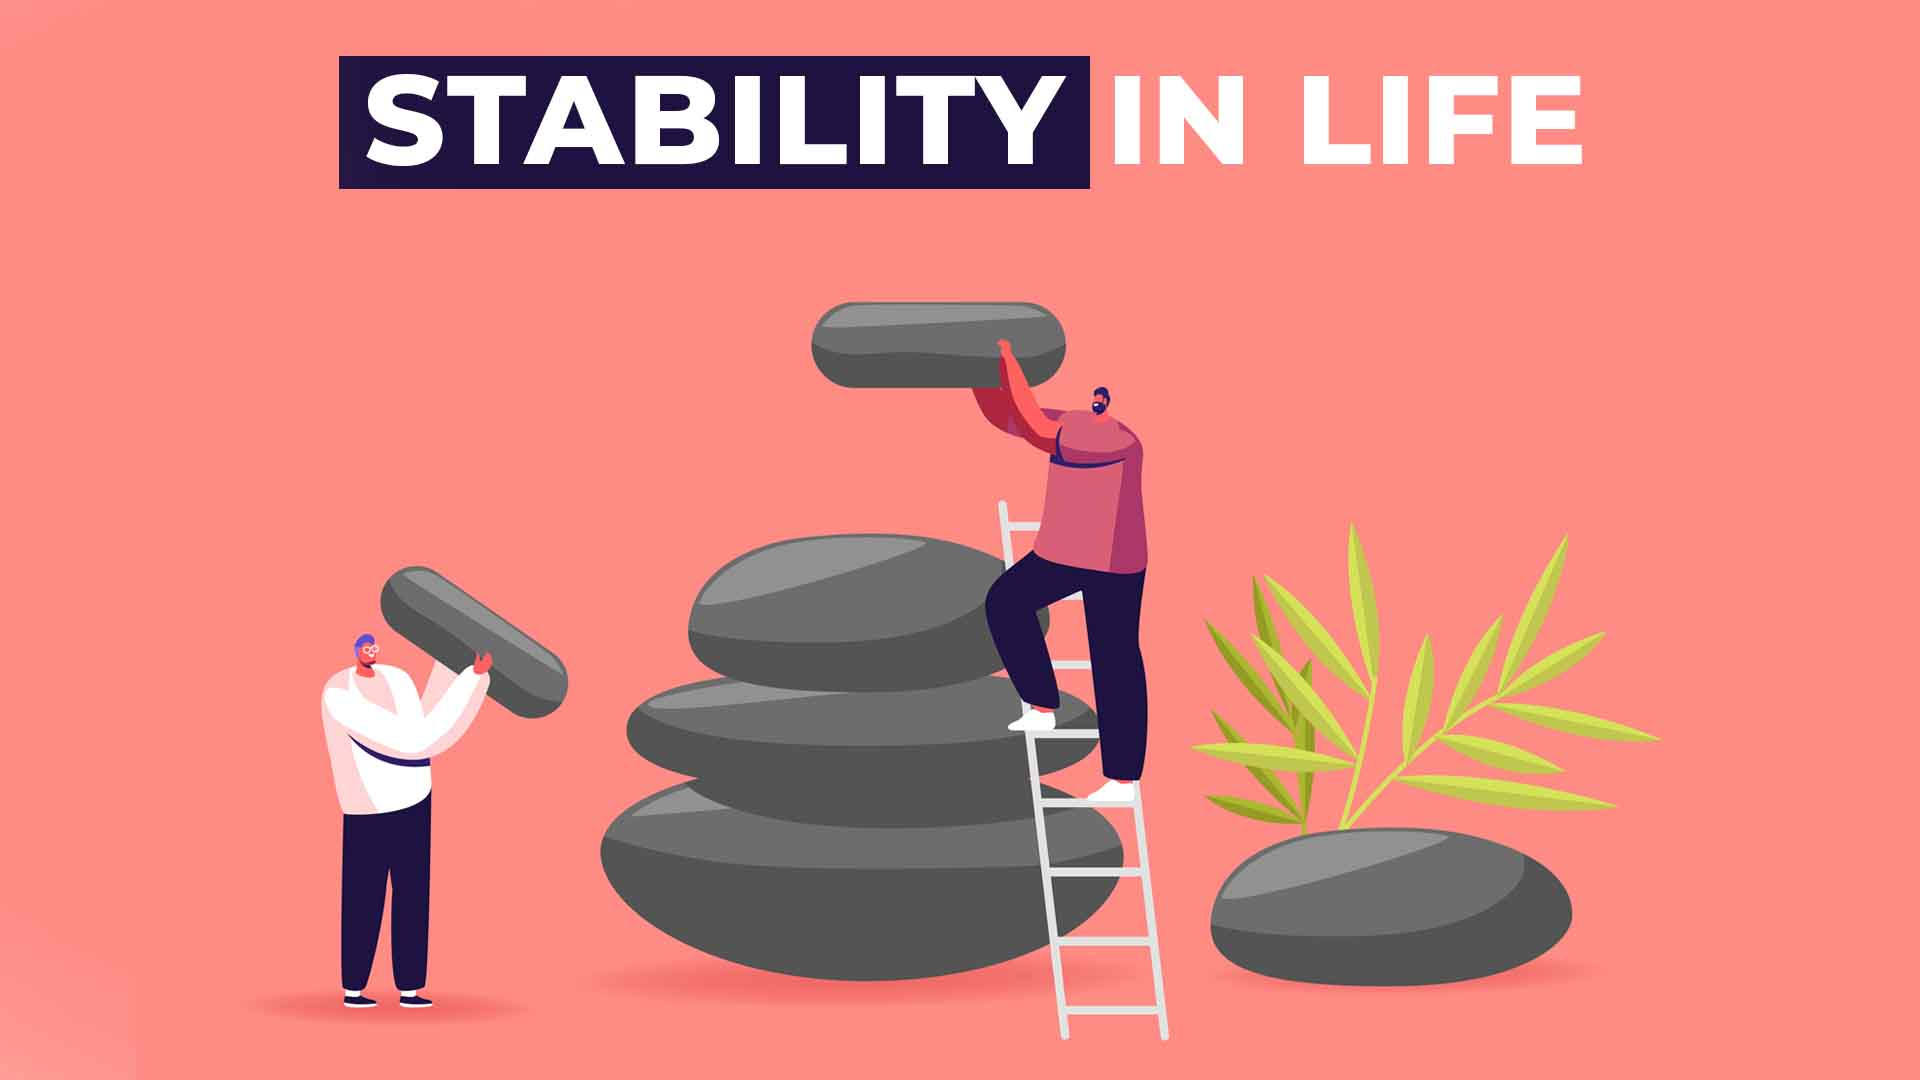 Stability in life